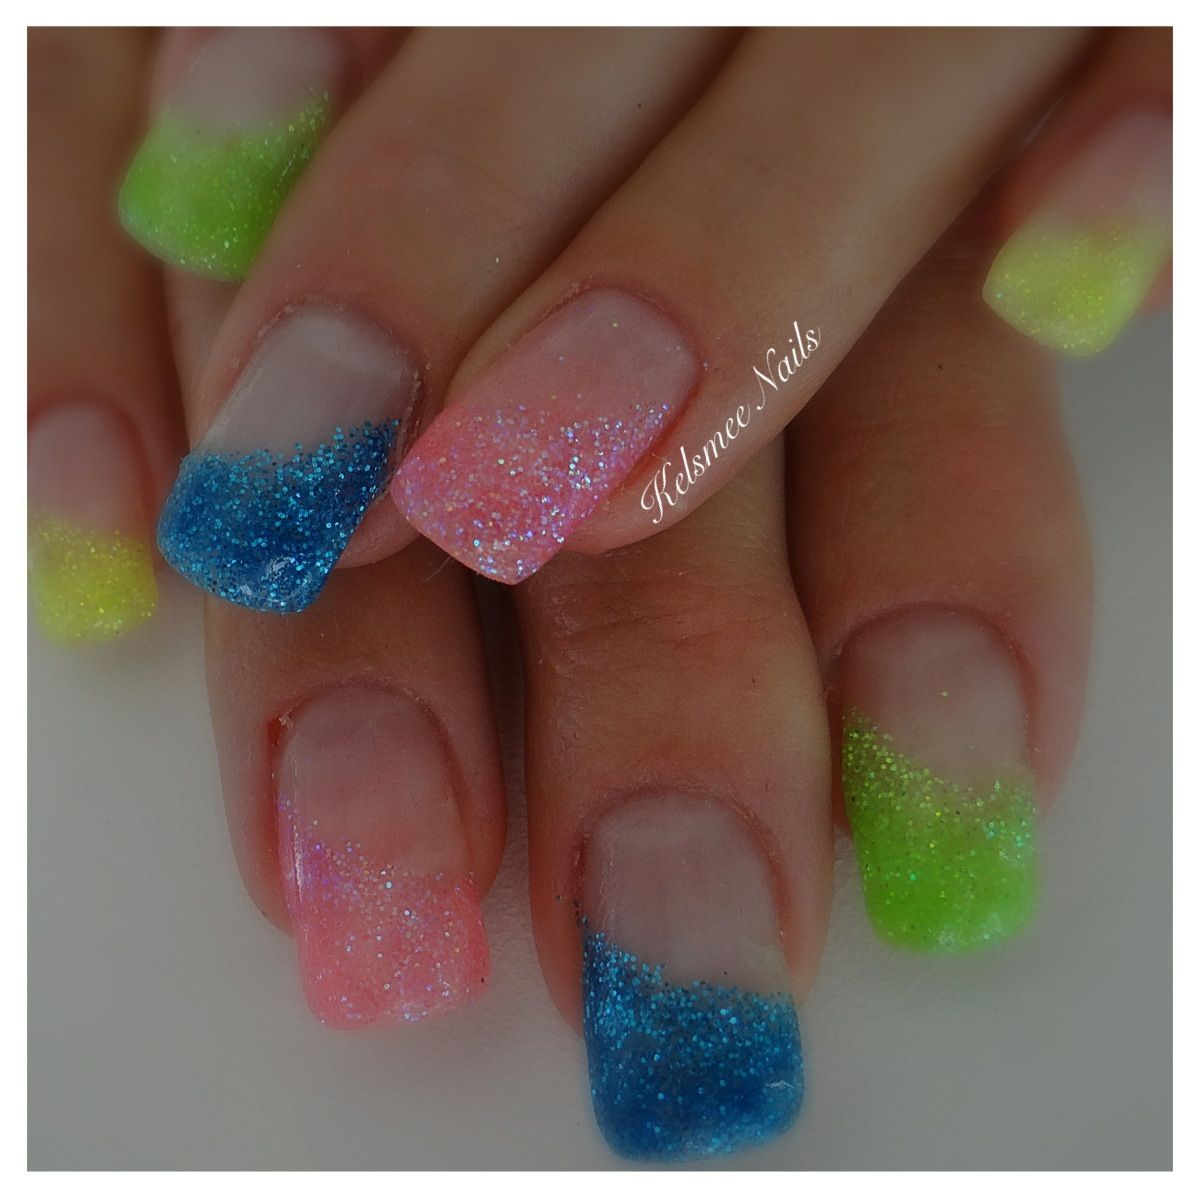 Young Nails gel glitternails neon | French Nails With a Twist ...